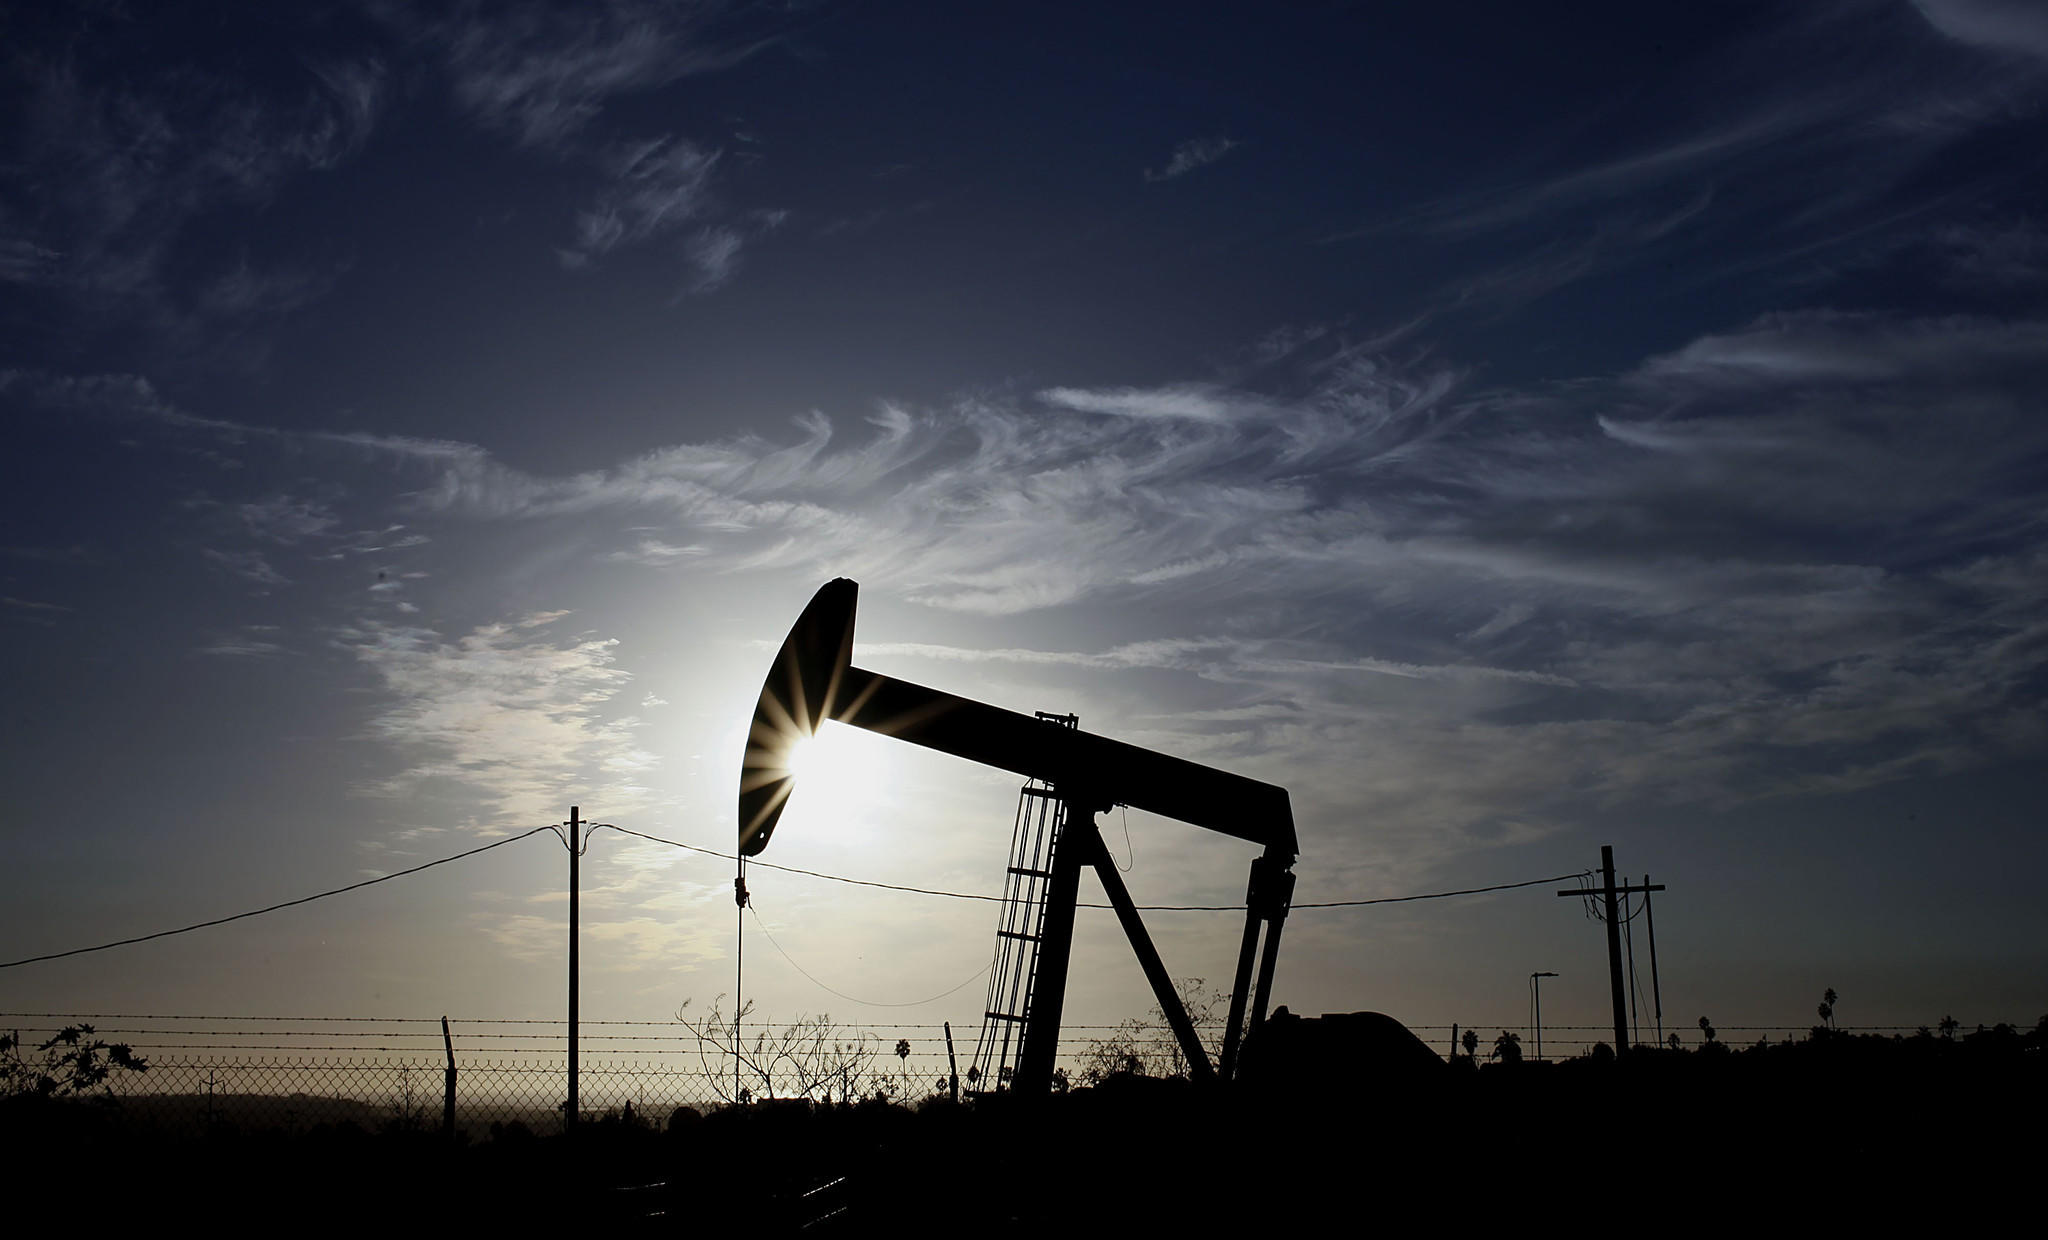 A new report commissioned by the trade group Western States Petroleum Assn. says that the oil and gas industry creates thousands of jobs in California.